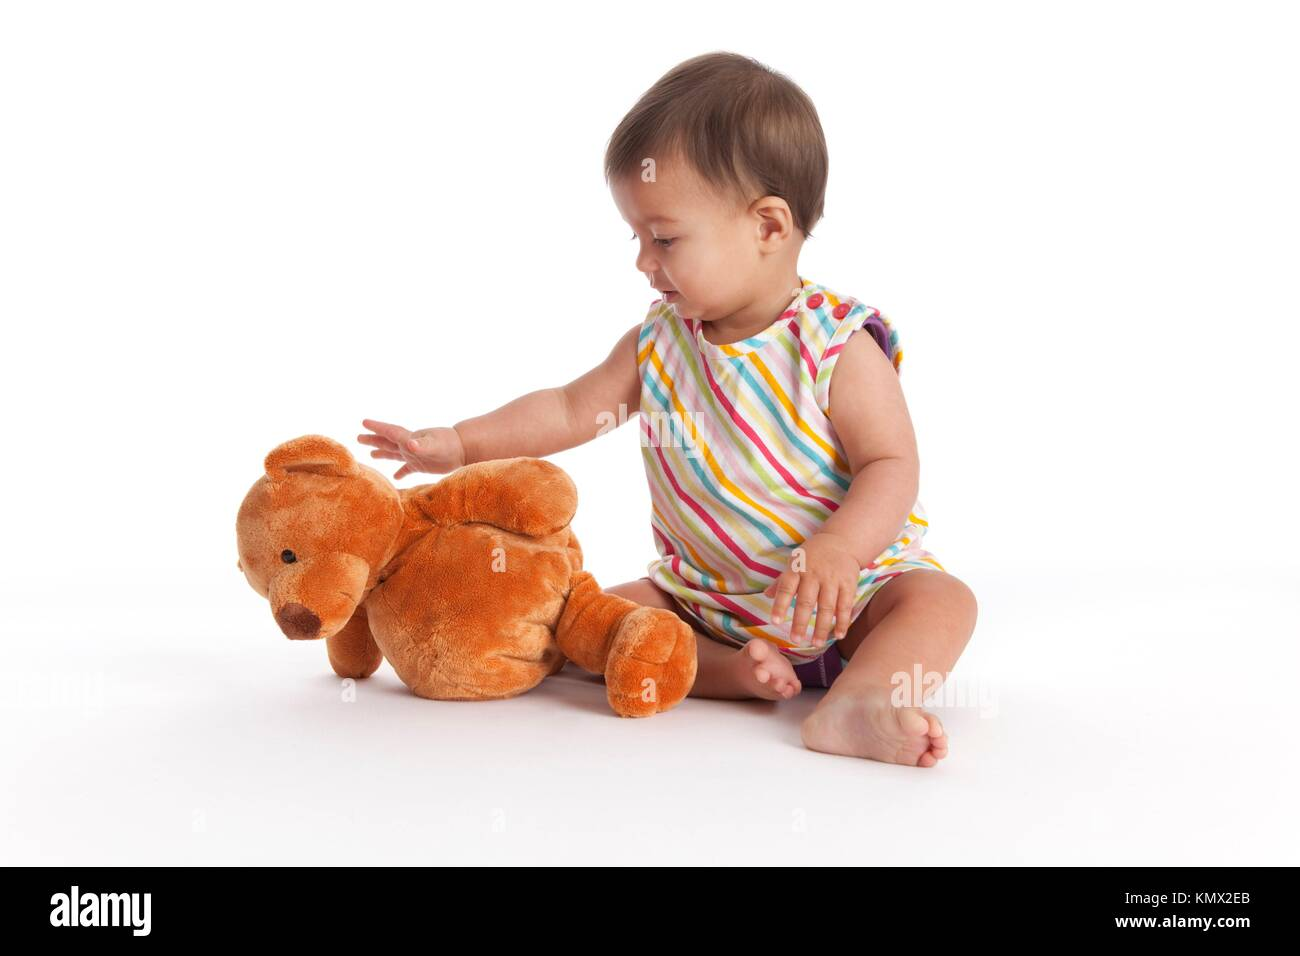 Bear Girl Not Teddy Stock Photos Amp Bear Girl Not Teddy